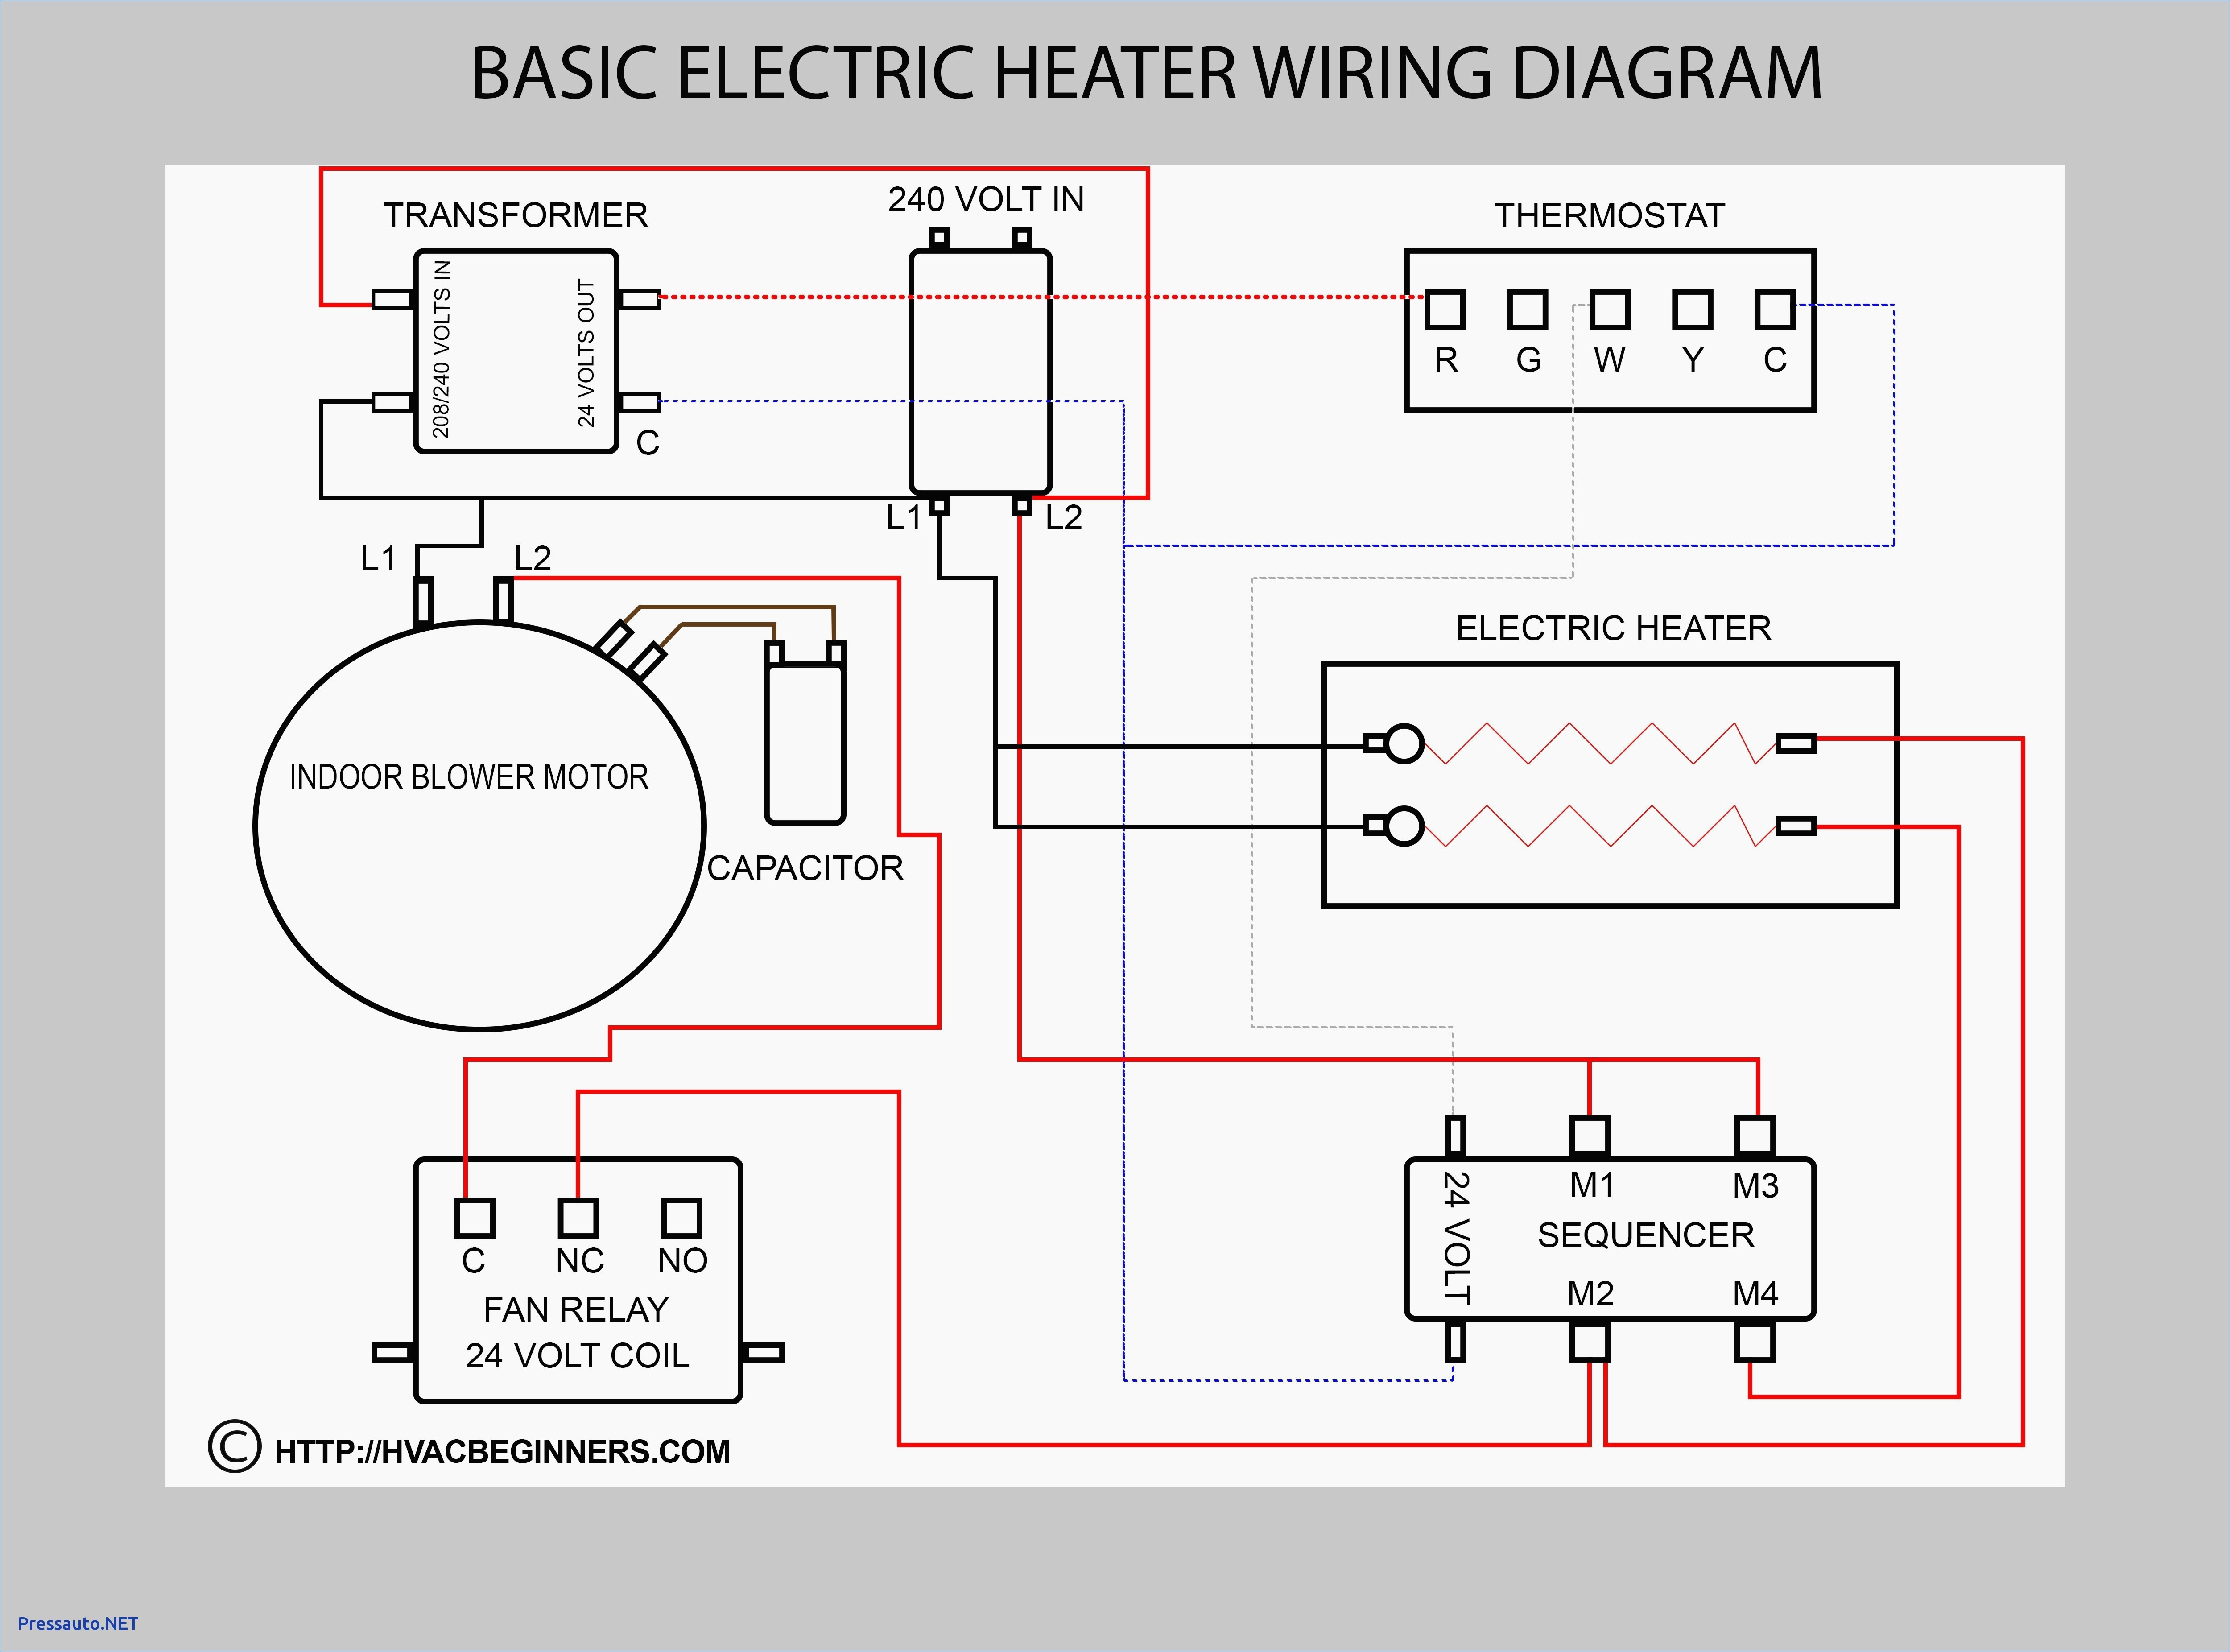 intermatic k4221c wiring diagram Download-central boiler thermostat wiring diagram Collection Wiring Diagrams For Central Heating Save Wiring Diagram For 12-c